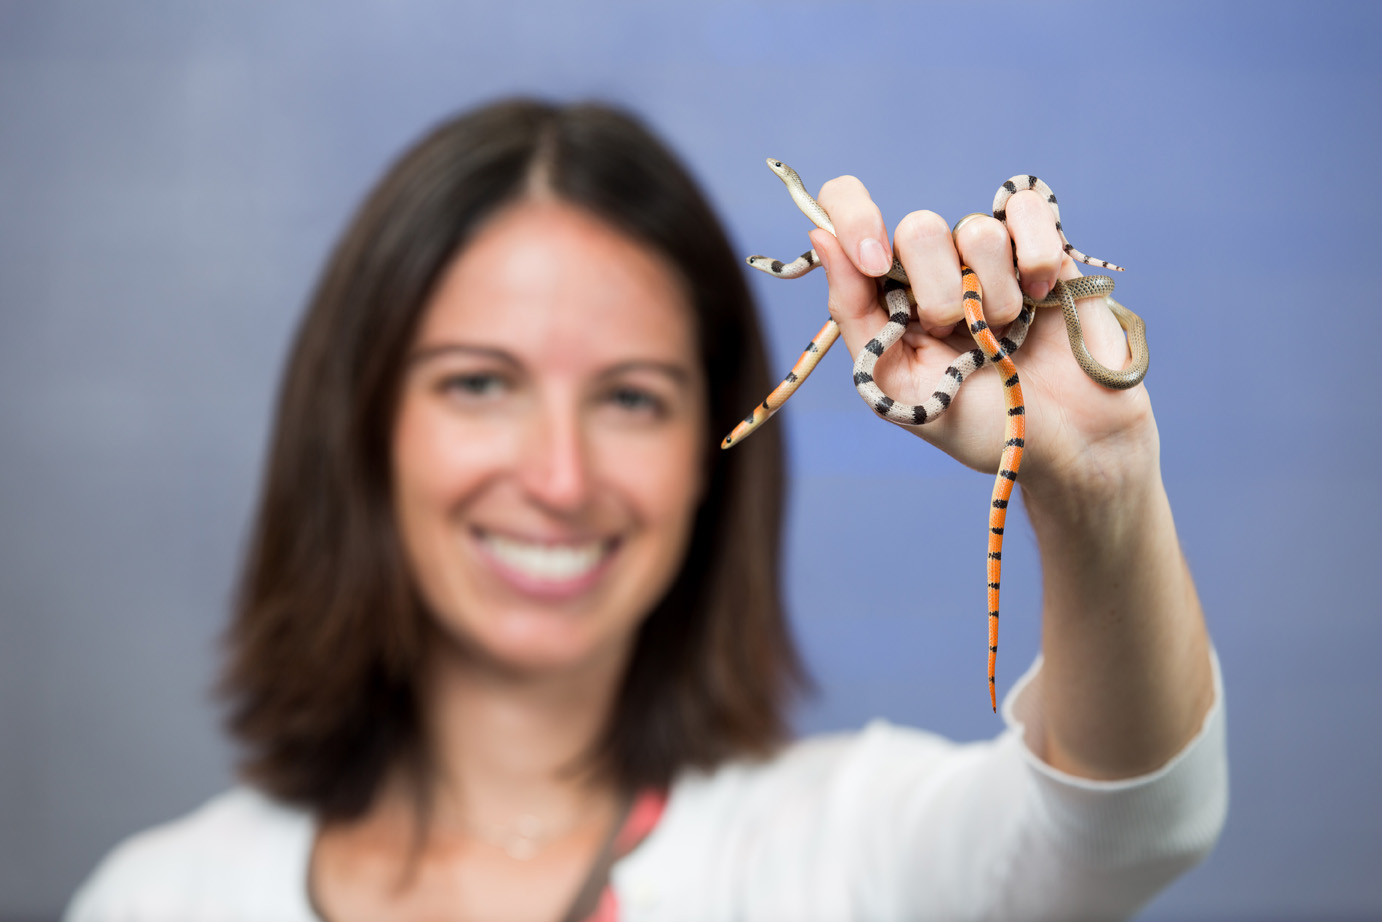 U-M evolutionary biologist Alison Davis Rabosky holding several ground snakes, a non-venomous species that displays four strikingly different color patterns. Rabosky is breeding ground snakes in her lab to understand the genetics behind color variation. Image credit: Eric Bronson, Michigan Photography